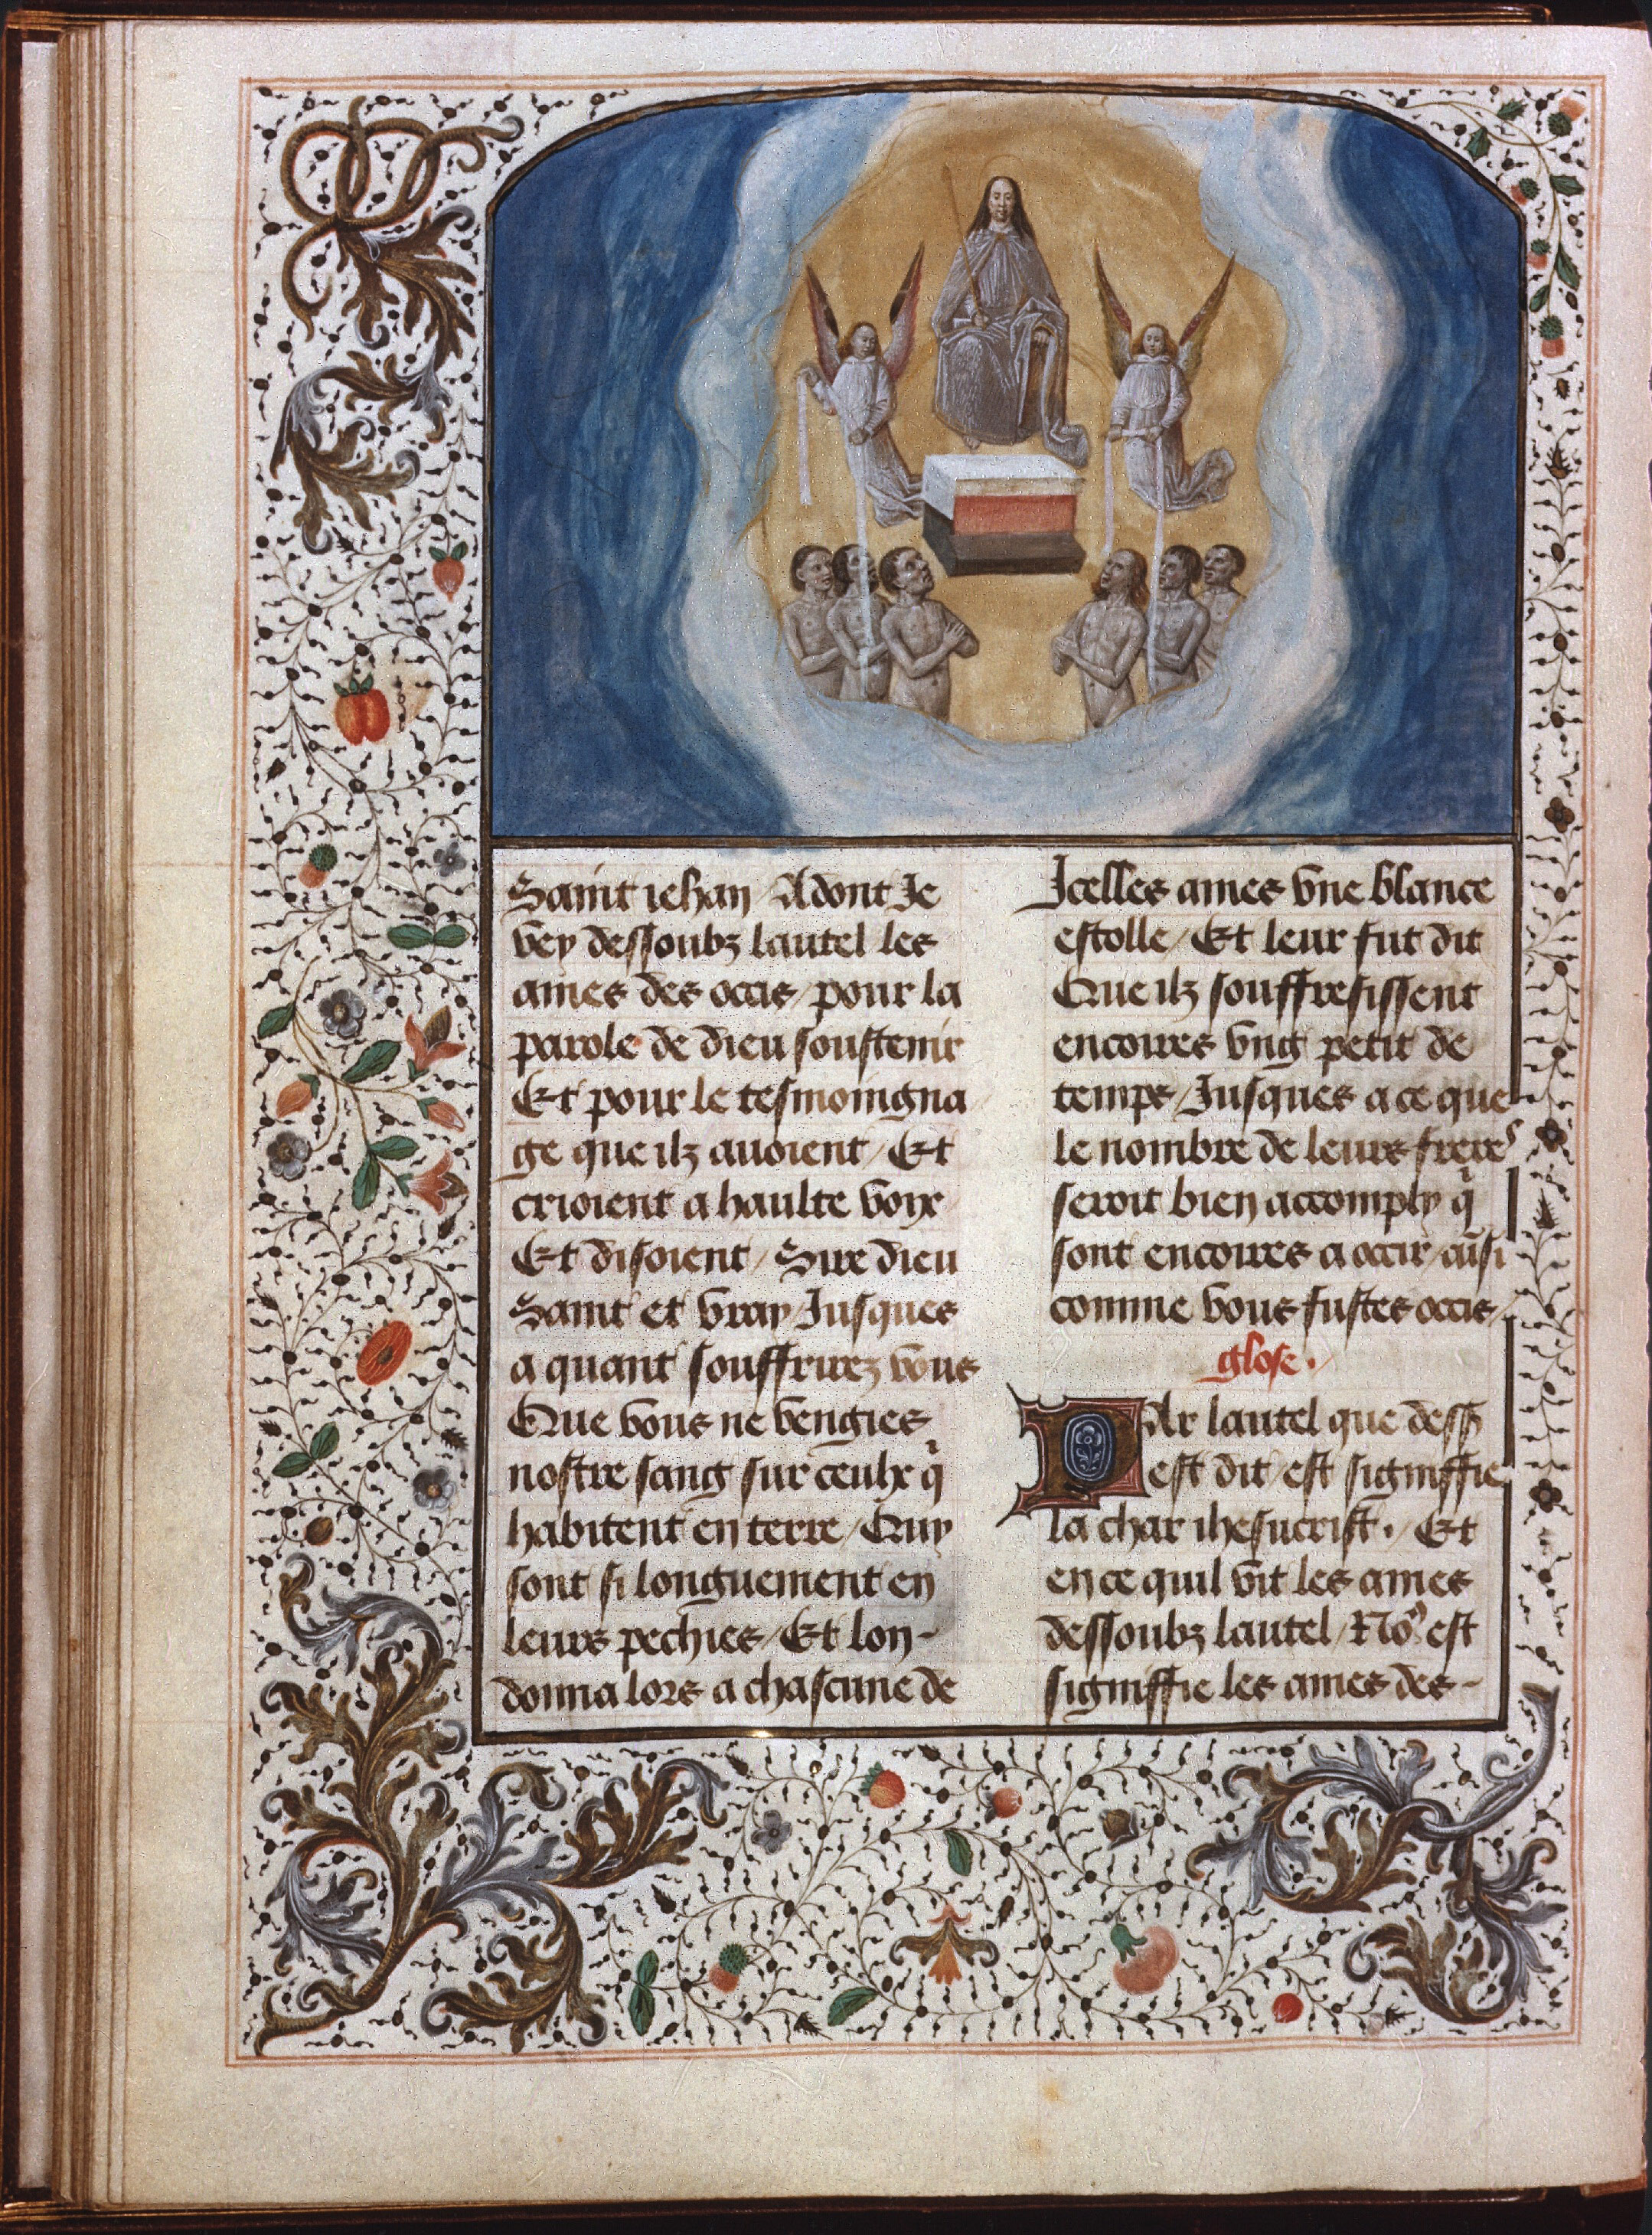 Slide from the Delaisse collection showing Grisaille miniature with color wash, from Apocalypse of Margaret of York, circa 1475